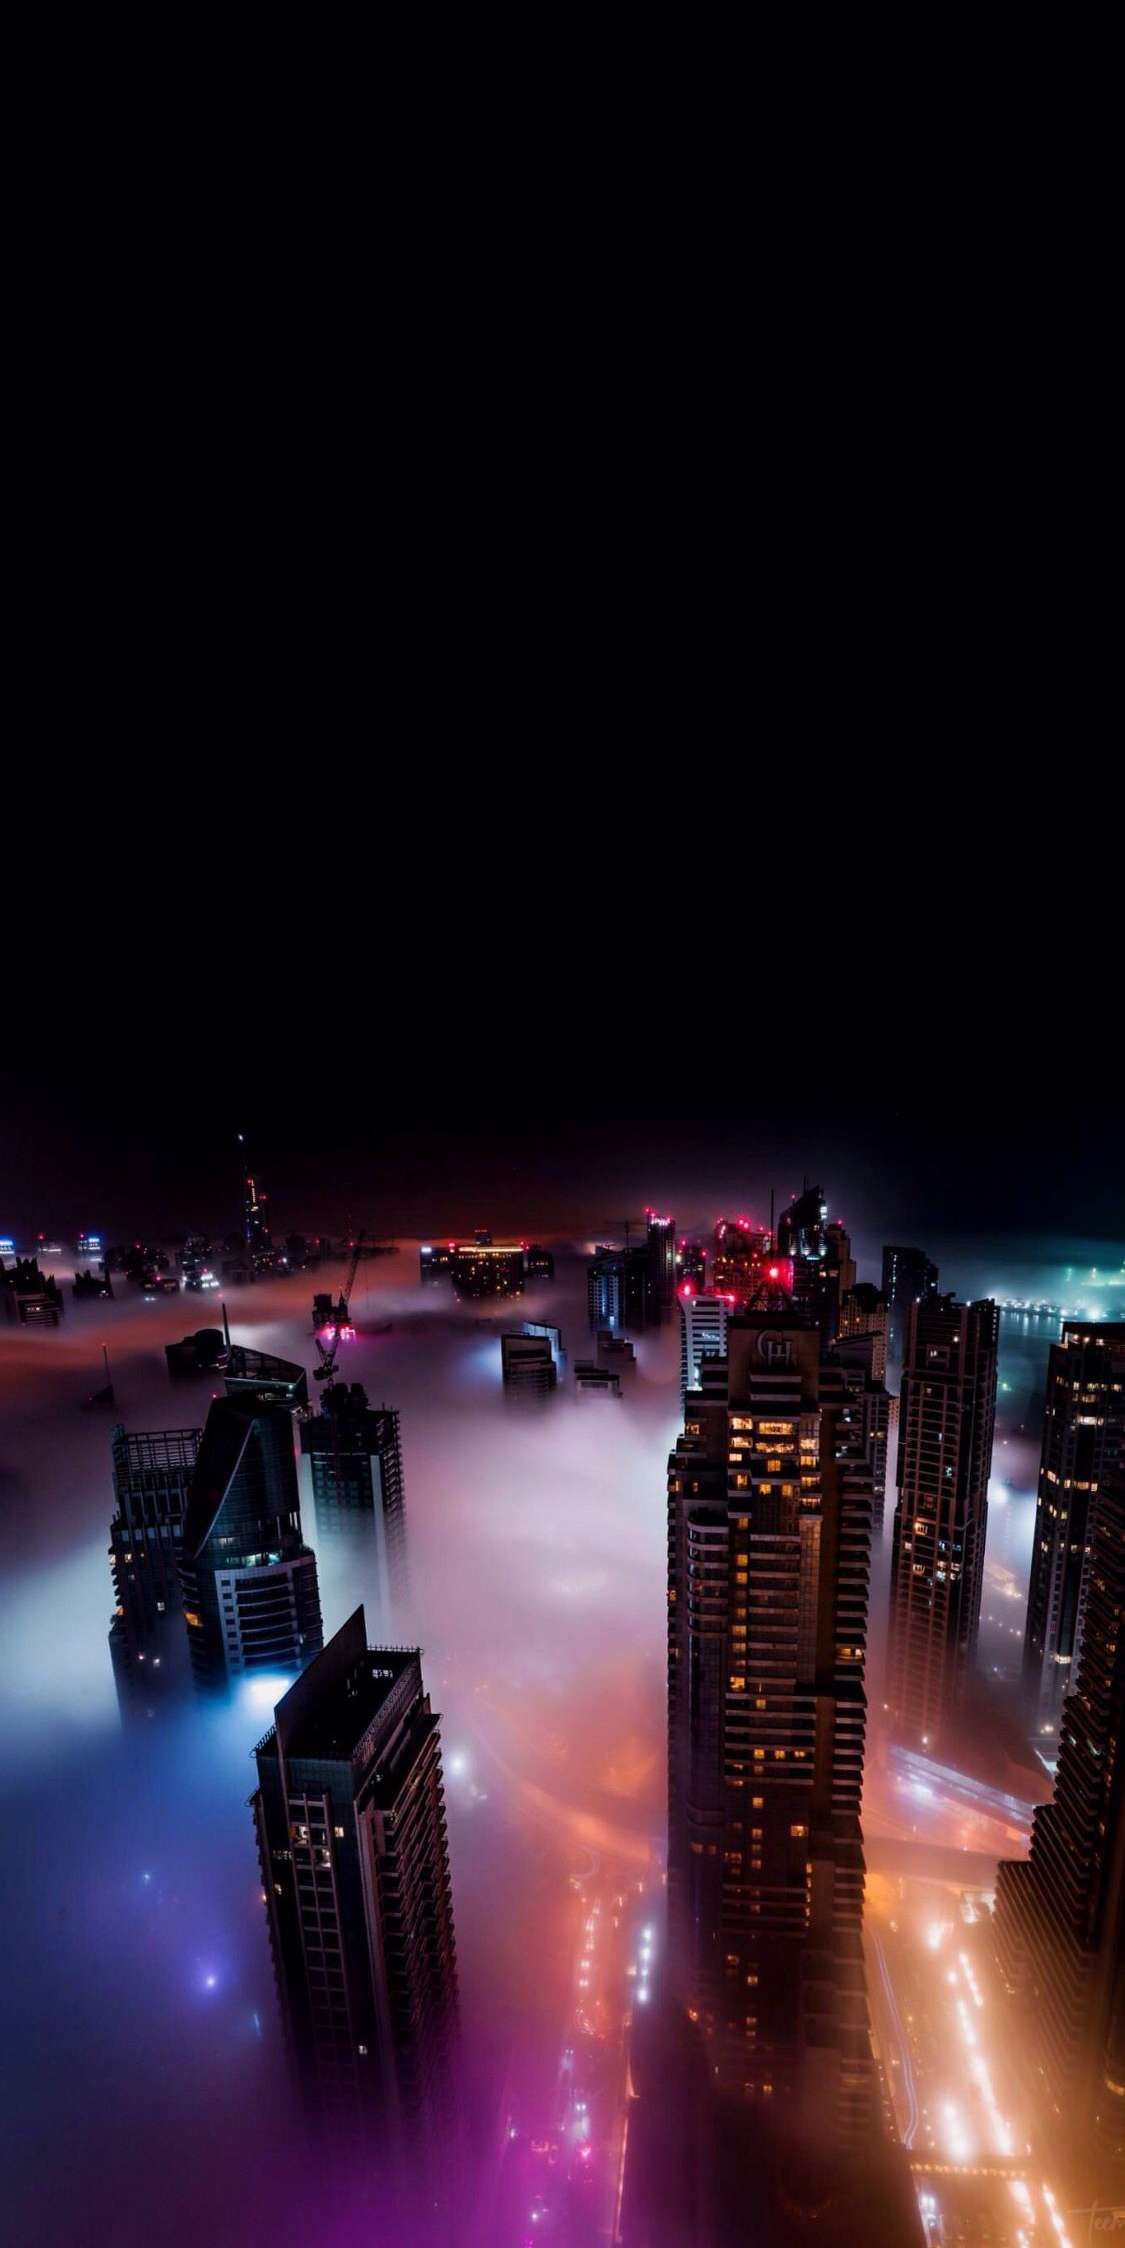 City At Night Iphone Wallpaper City Wallpaper Landscape Photography Night City